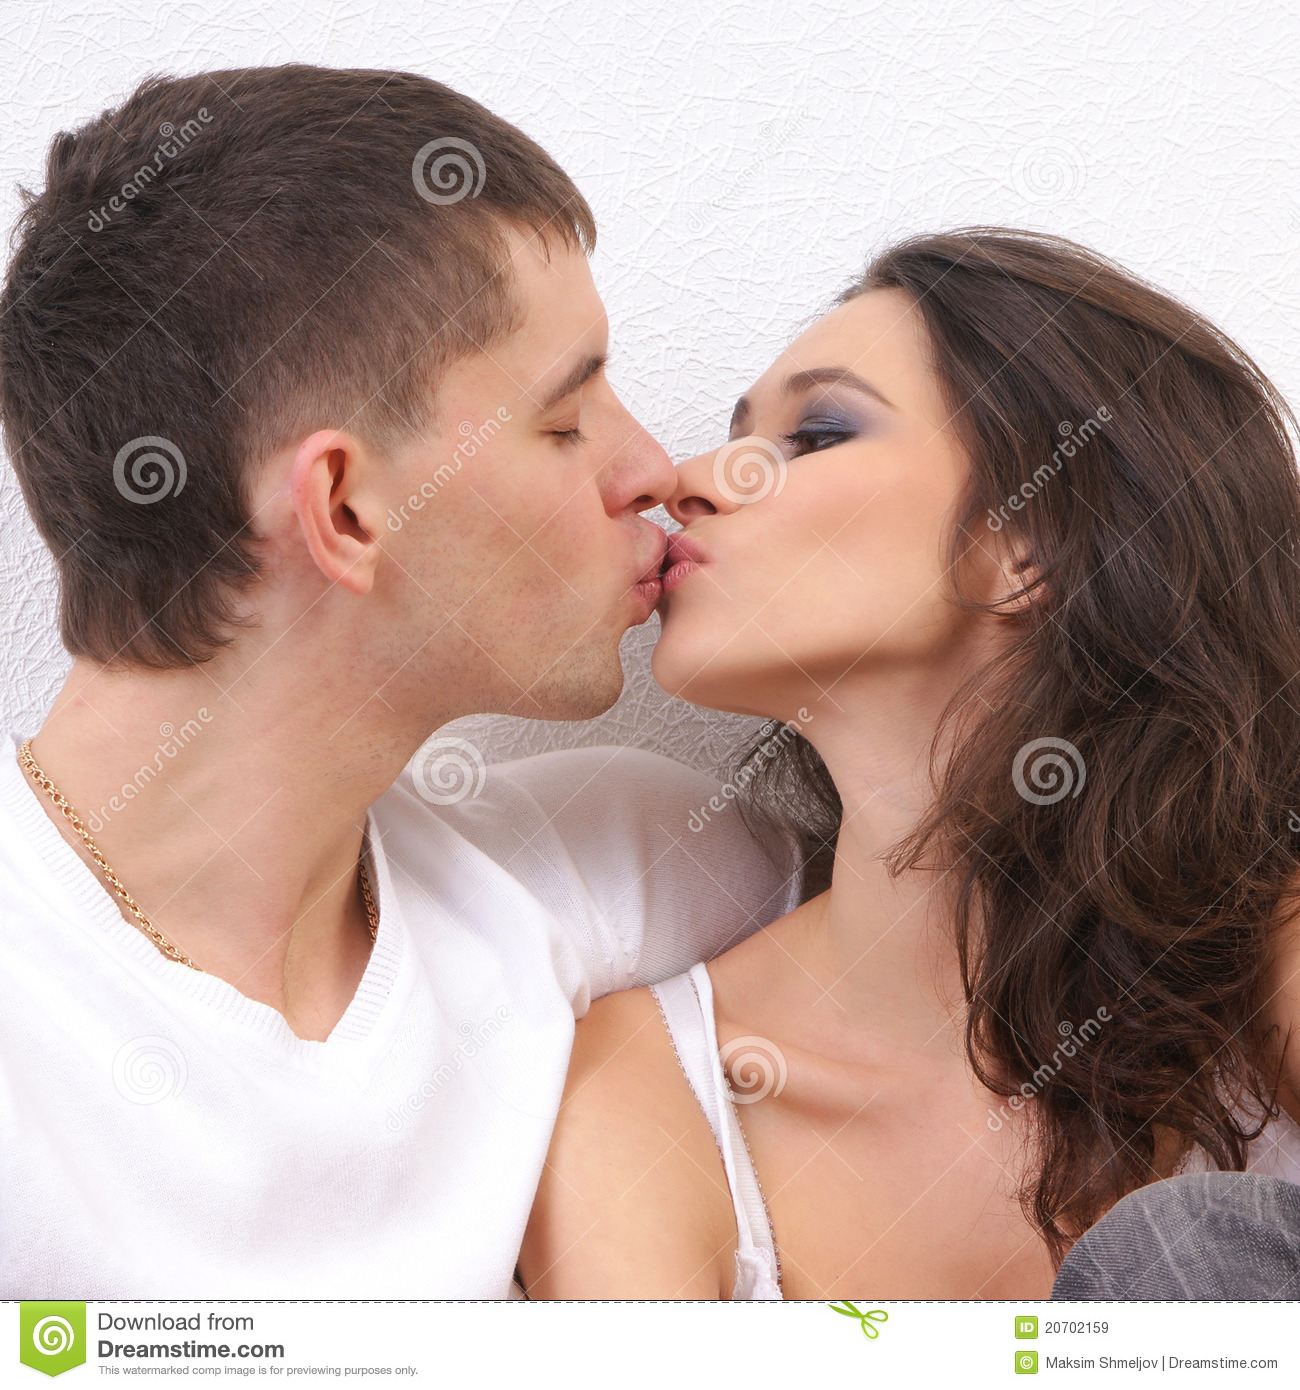 A Young And Loving Couple Kissing Each Other Stock Image